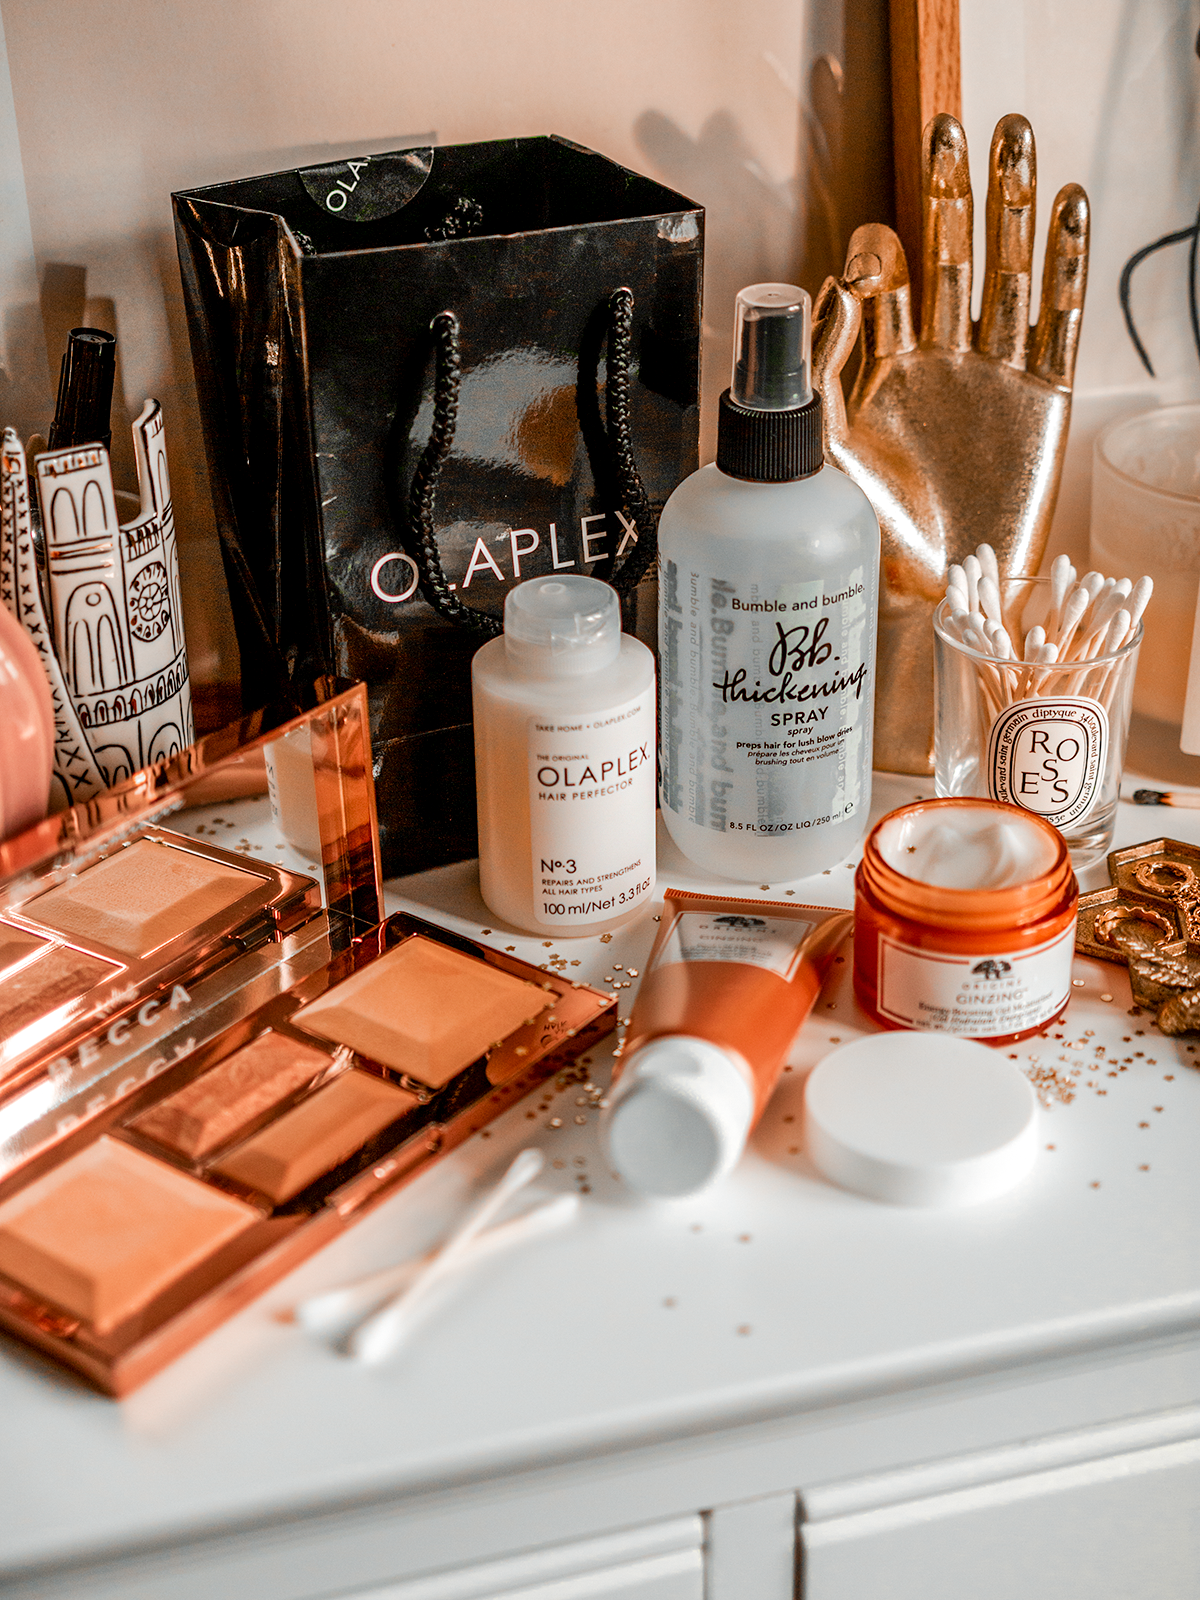 The Ordinary Black Friday 2021 Beauty Deals & Sales   Chic